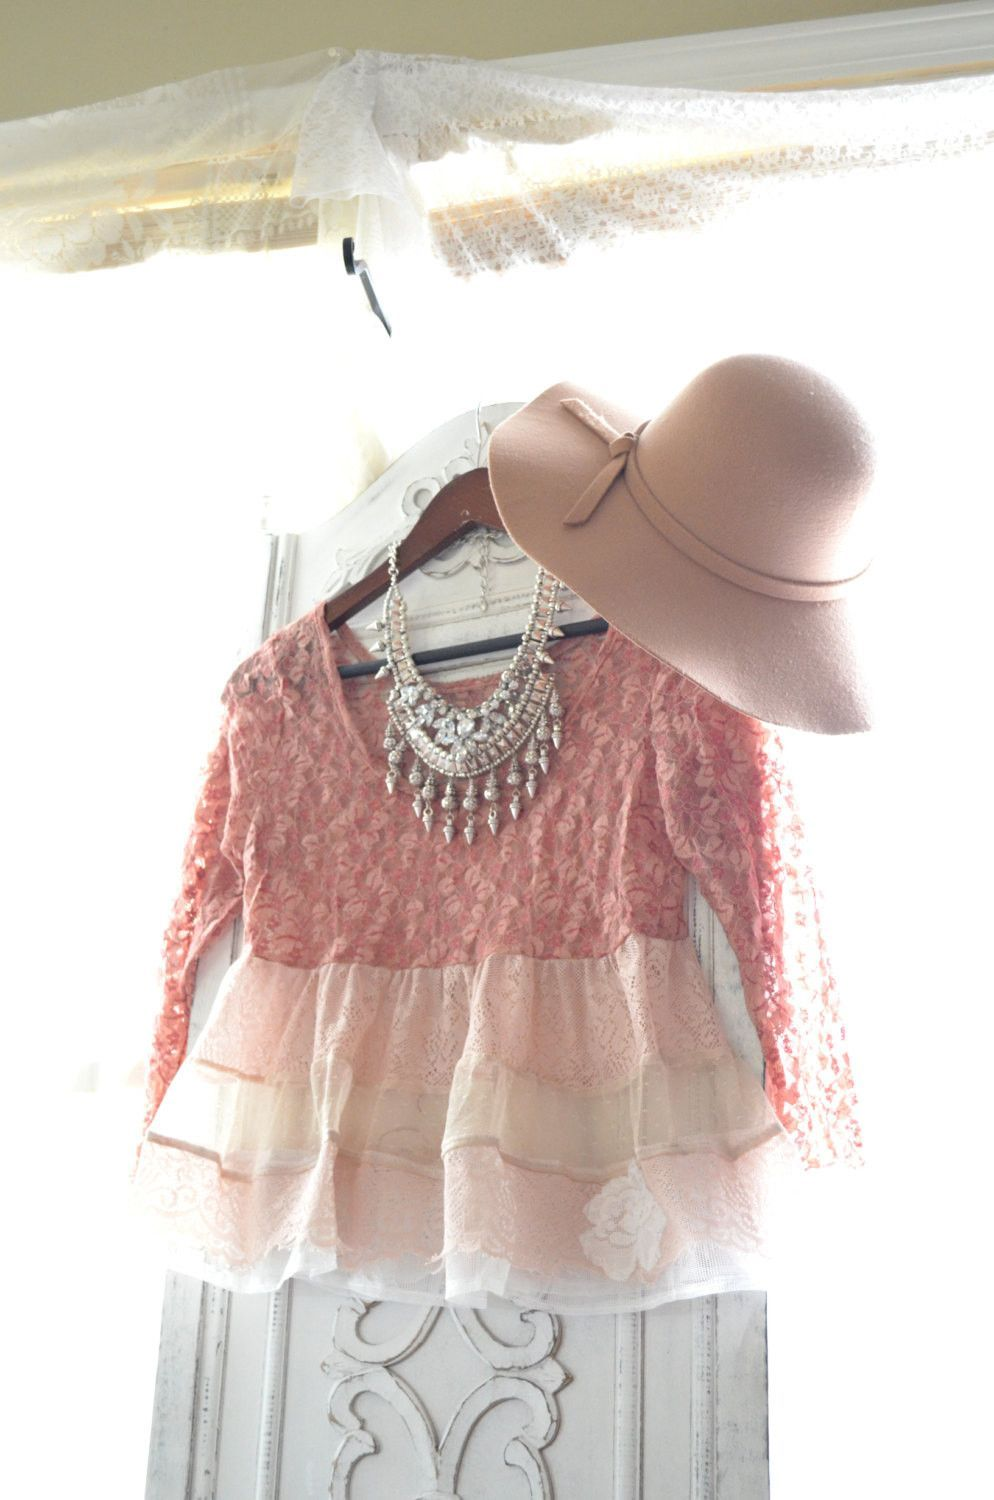 Romantic lace crop top, Summer boho chic clothing, Bohemian gypsy lace shirt, Urban street chic pink top, Shabby, True rebel clothing Sm med